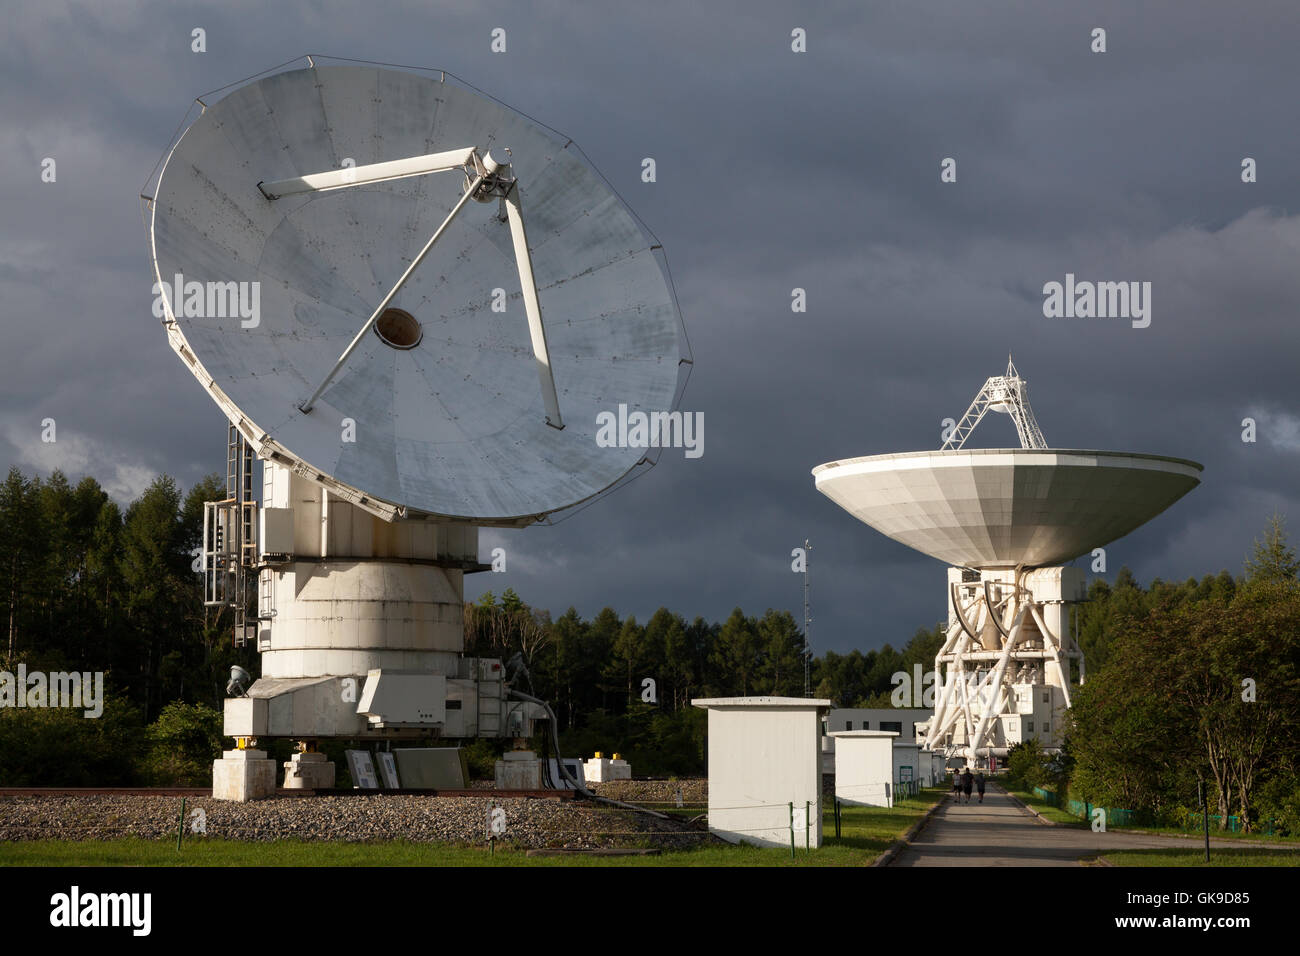 Nobeyama Radio Observatory (NRO) near Minamimaki, Nagano, Japan Tuesday August 16th 2016. - Stock Image